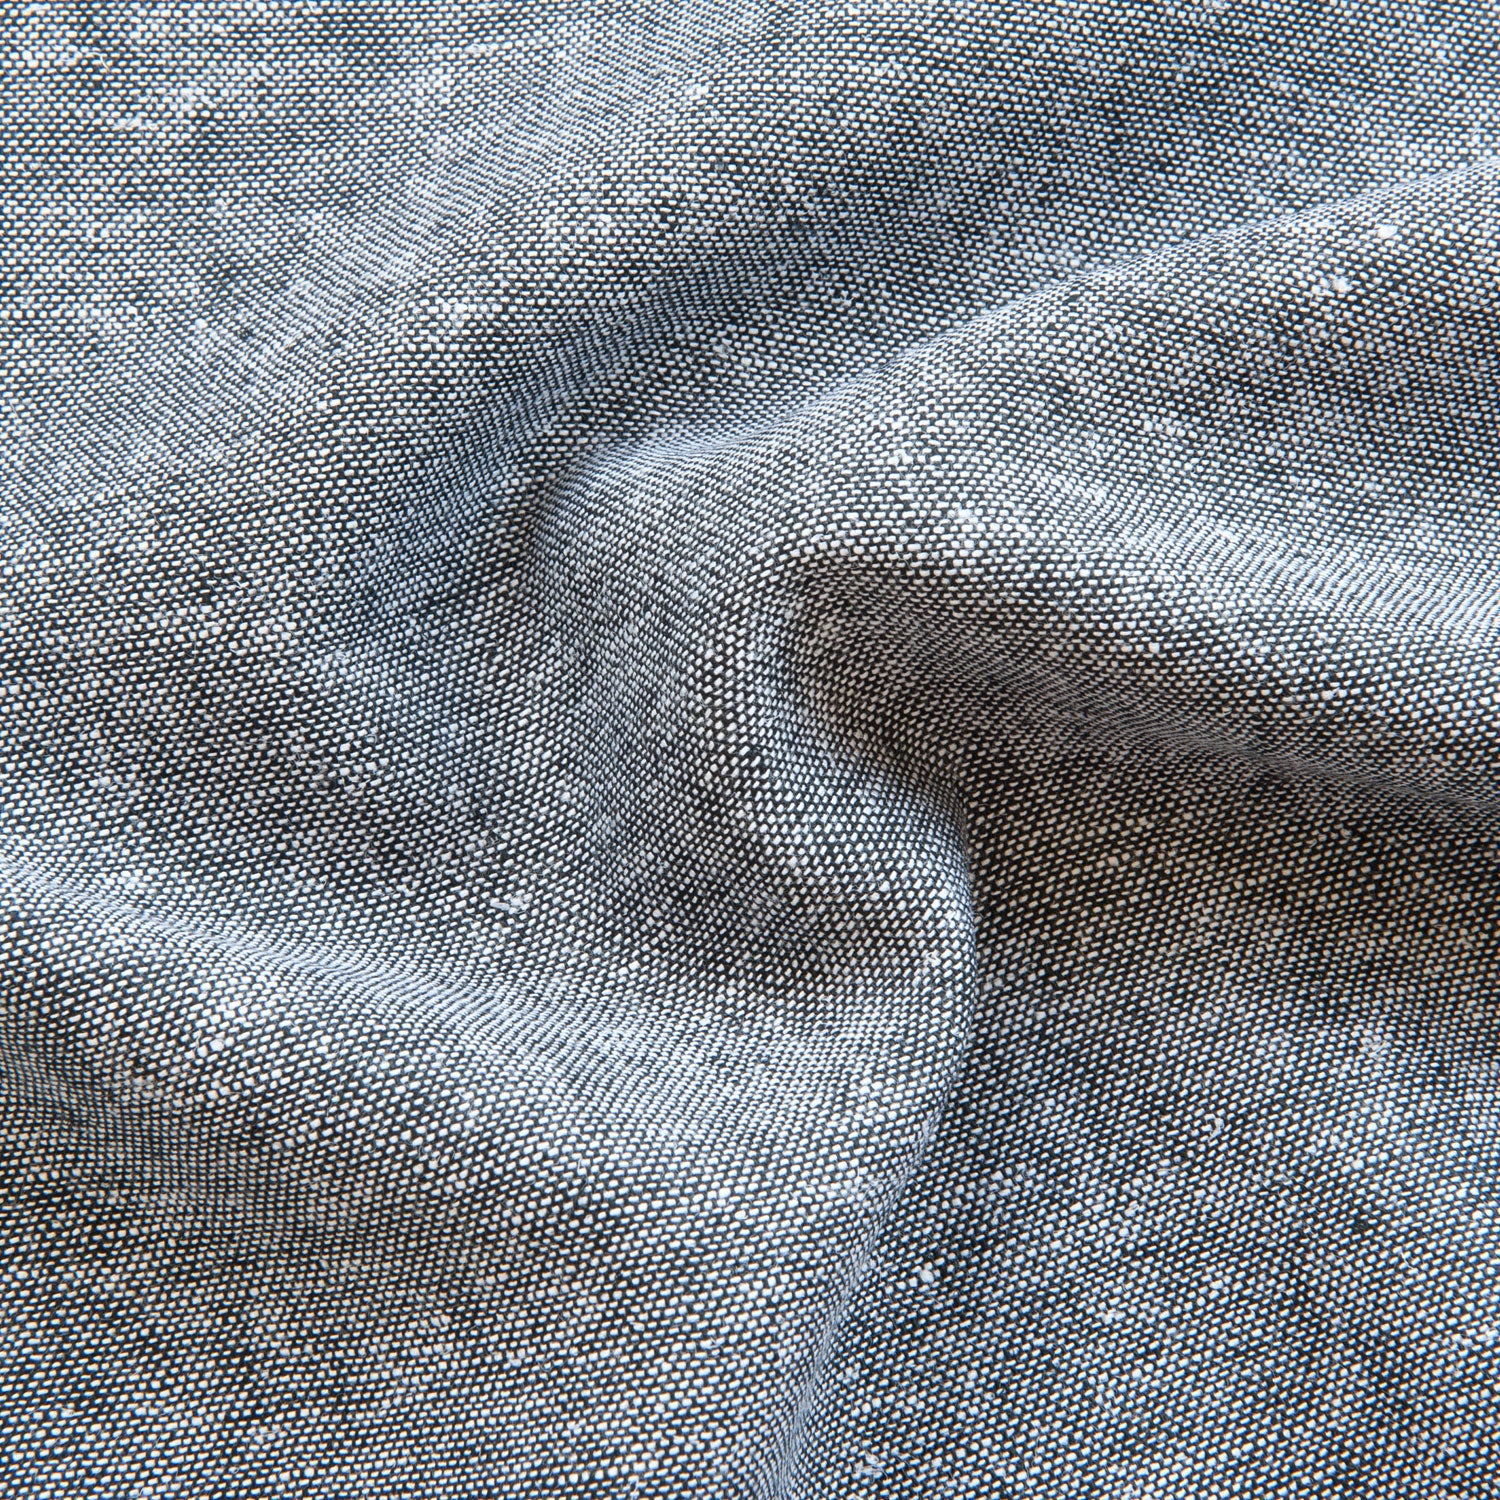 Navy & White Melange Viscose Linen - 1m Piece